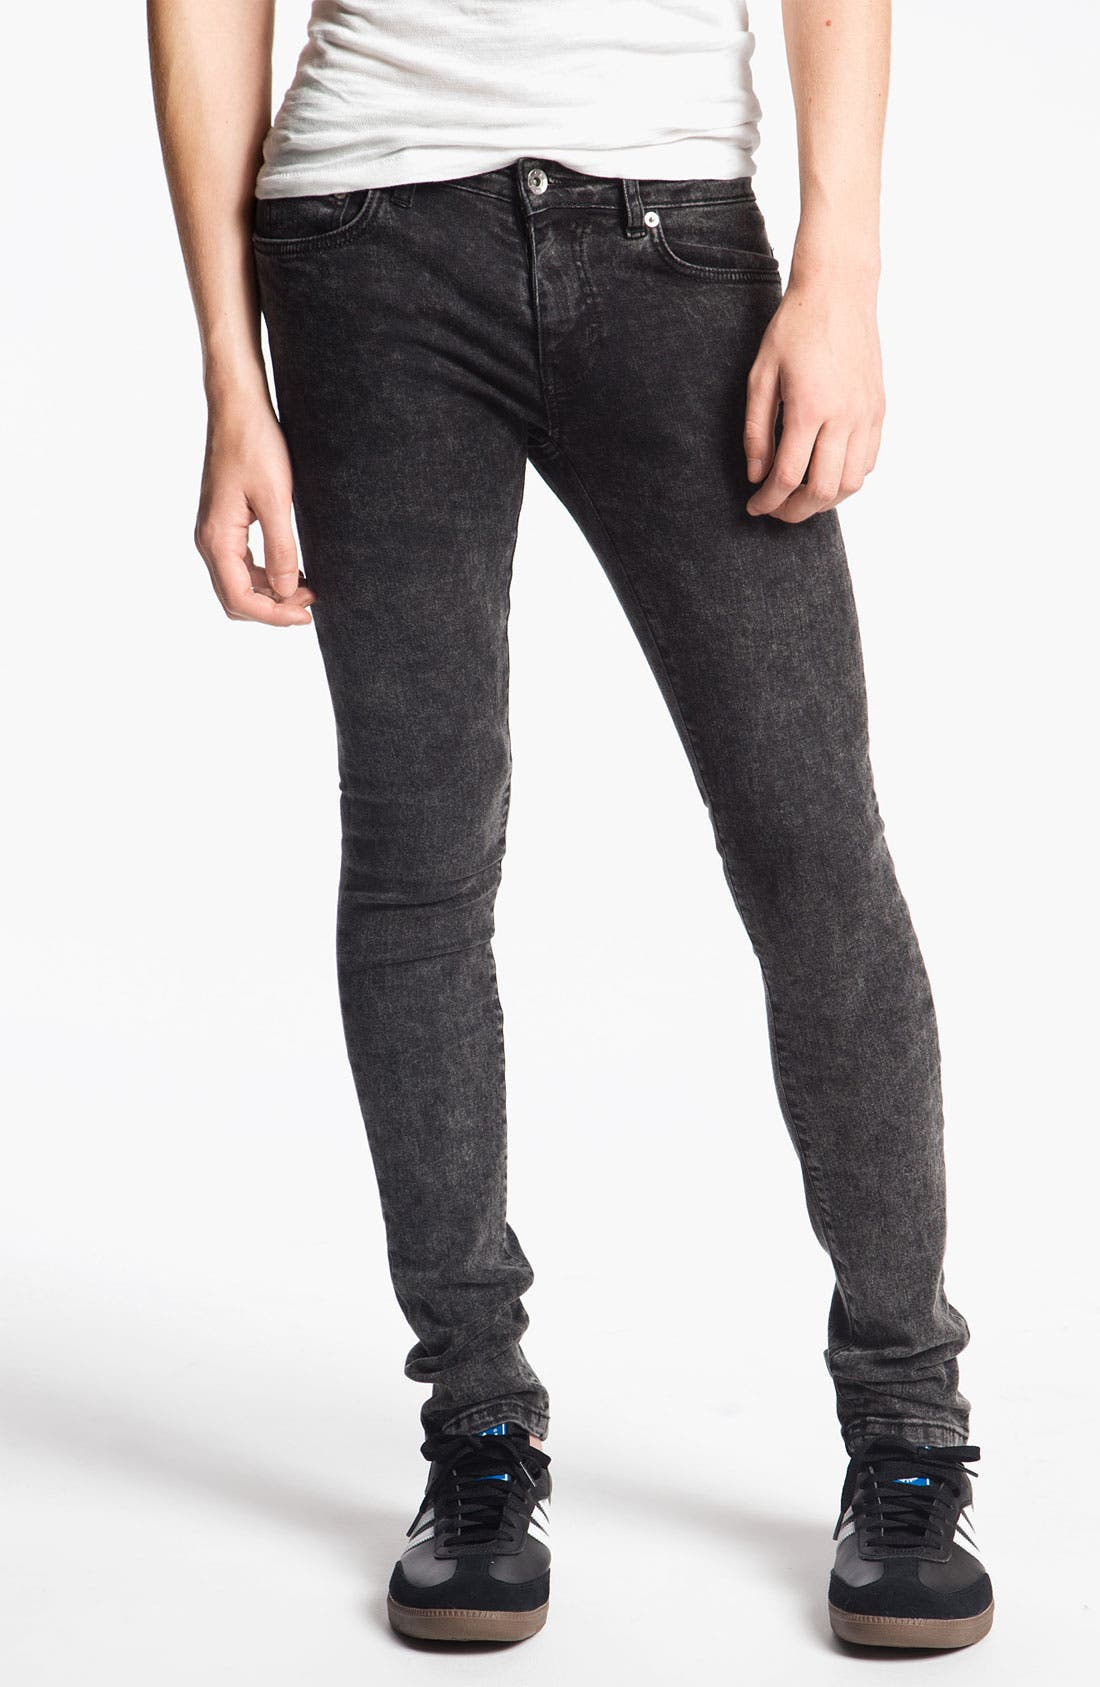 Alternate Image 1 Selected - Topman 'Spray On' Skinny Jeans (Acid)